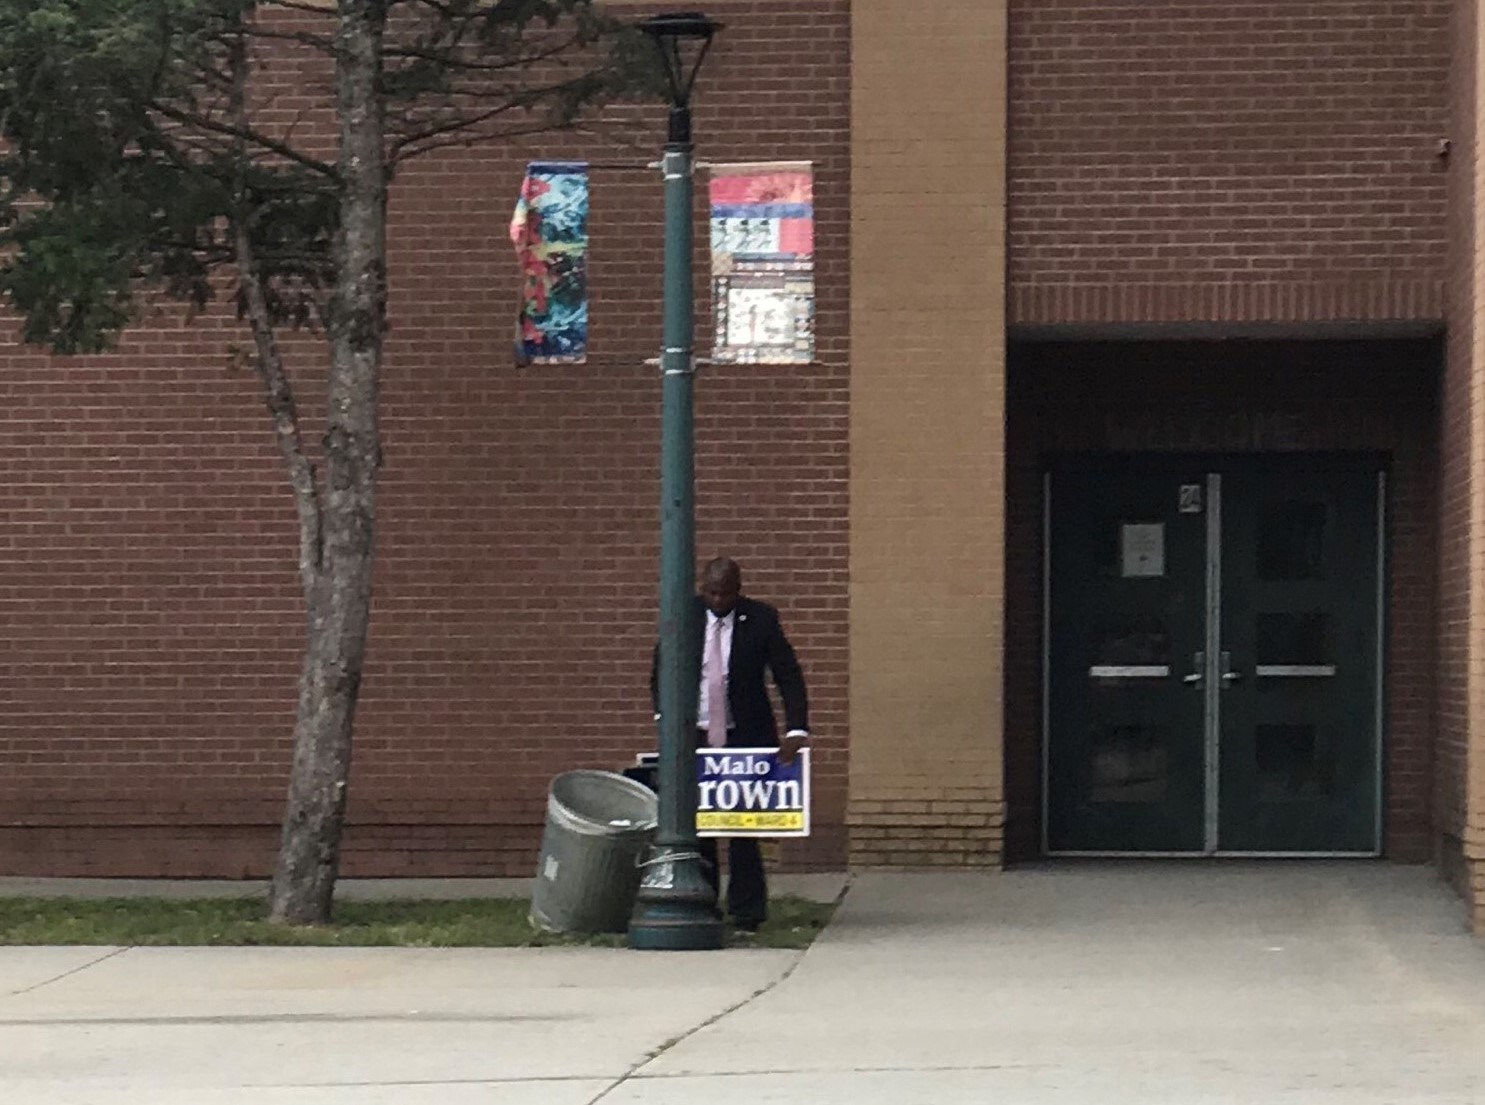 Springfield City Council candidate Jynai McDonald files election complaint, claims opponent Malo Brown campaigned too close to polling place